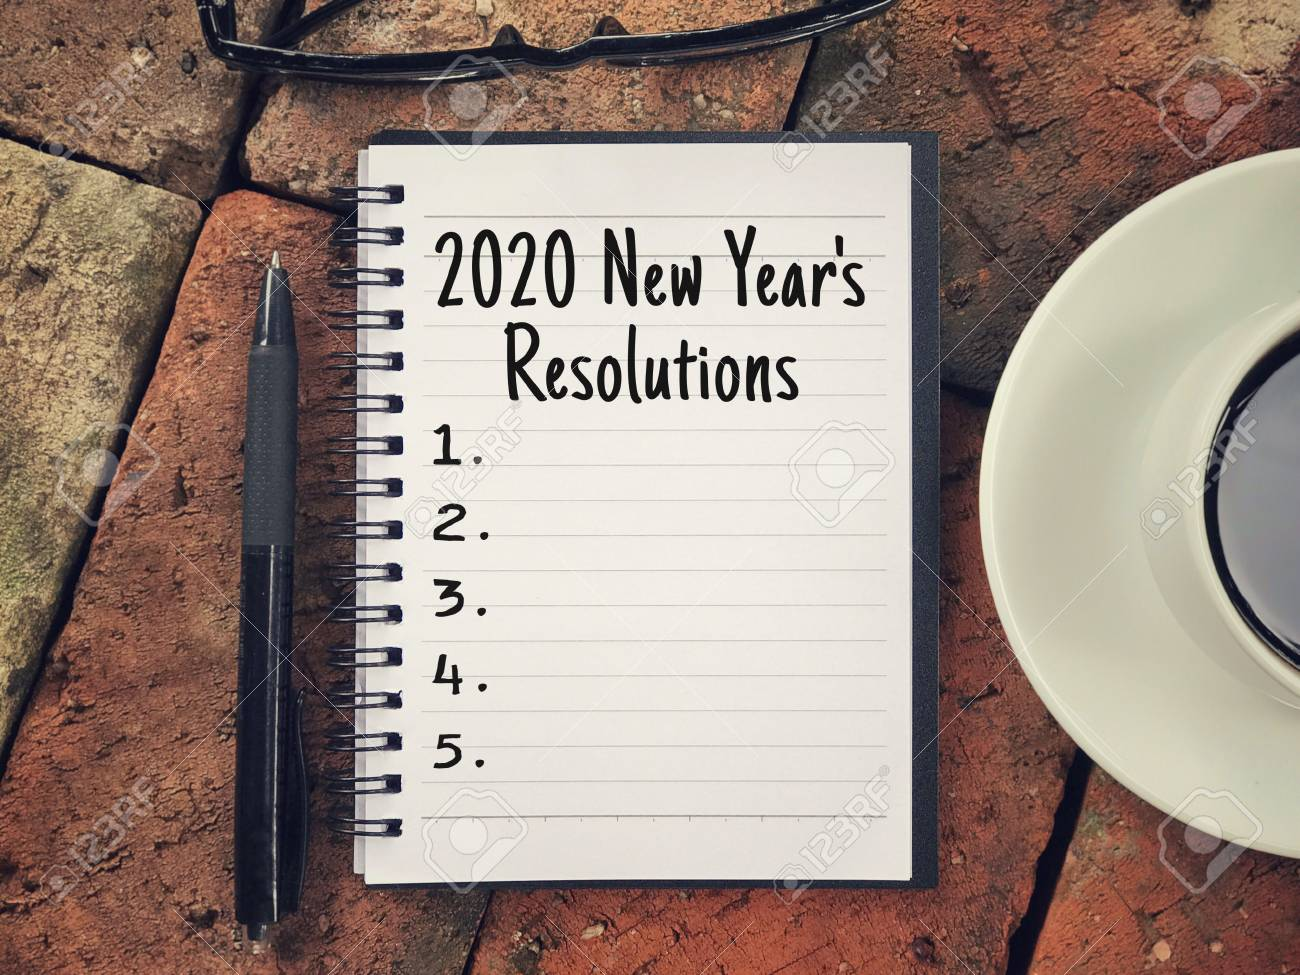 New Years Resolutions 2020.New Year Resolutions Concept 2020 New Year S Resolutions